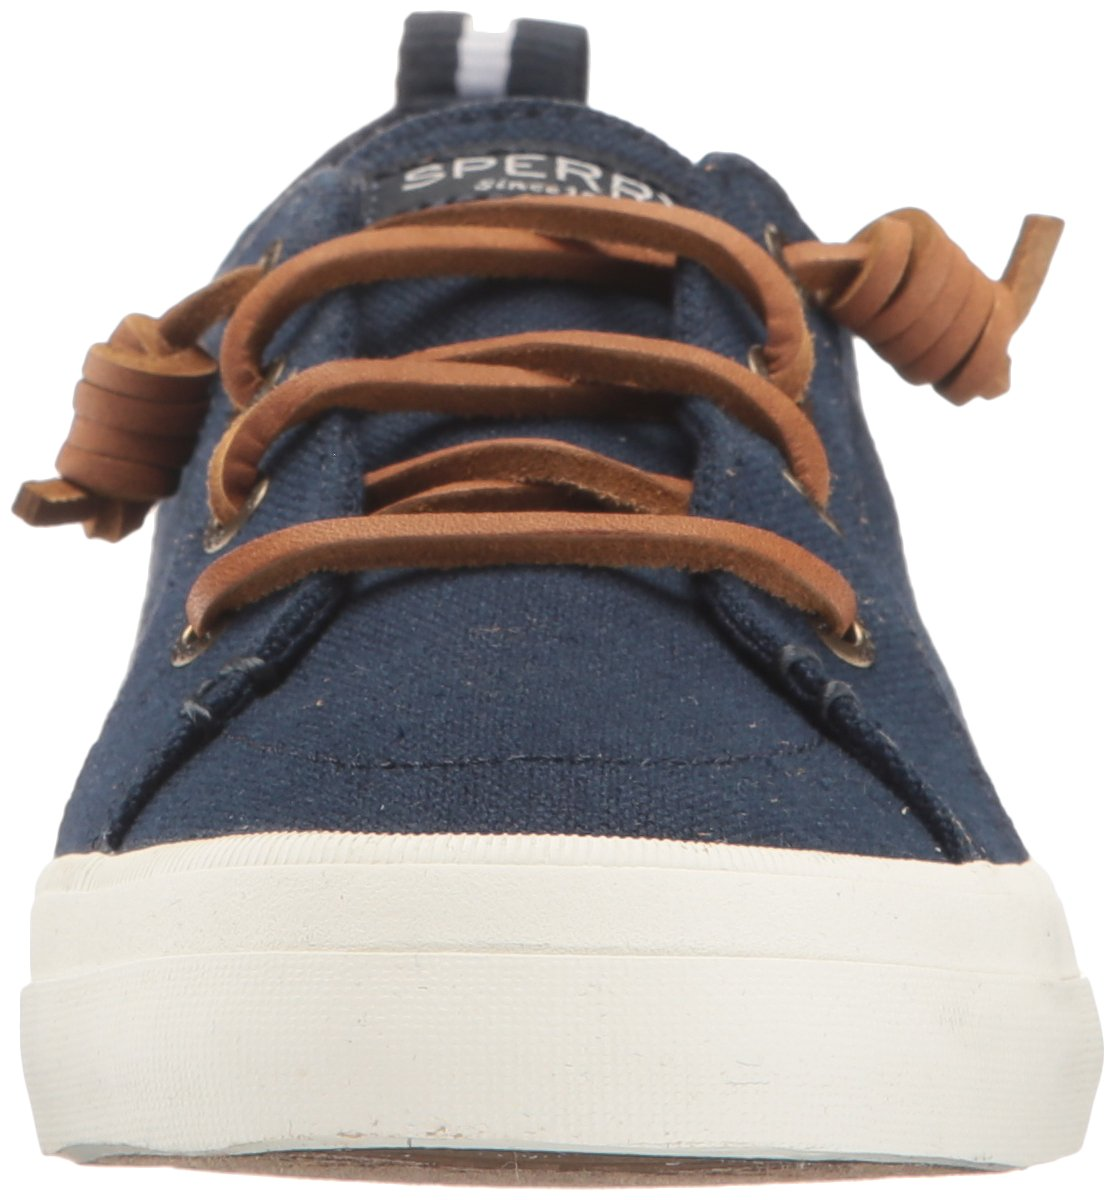 Sperry Top-Sider Women's Crest Vibe Sneaker B01G2HM3HM 6 M US|Navy